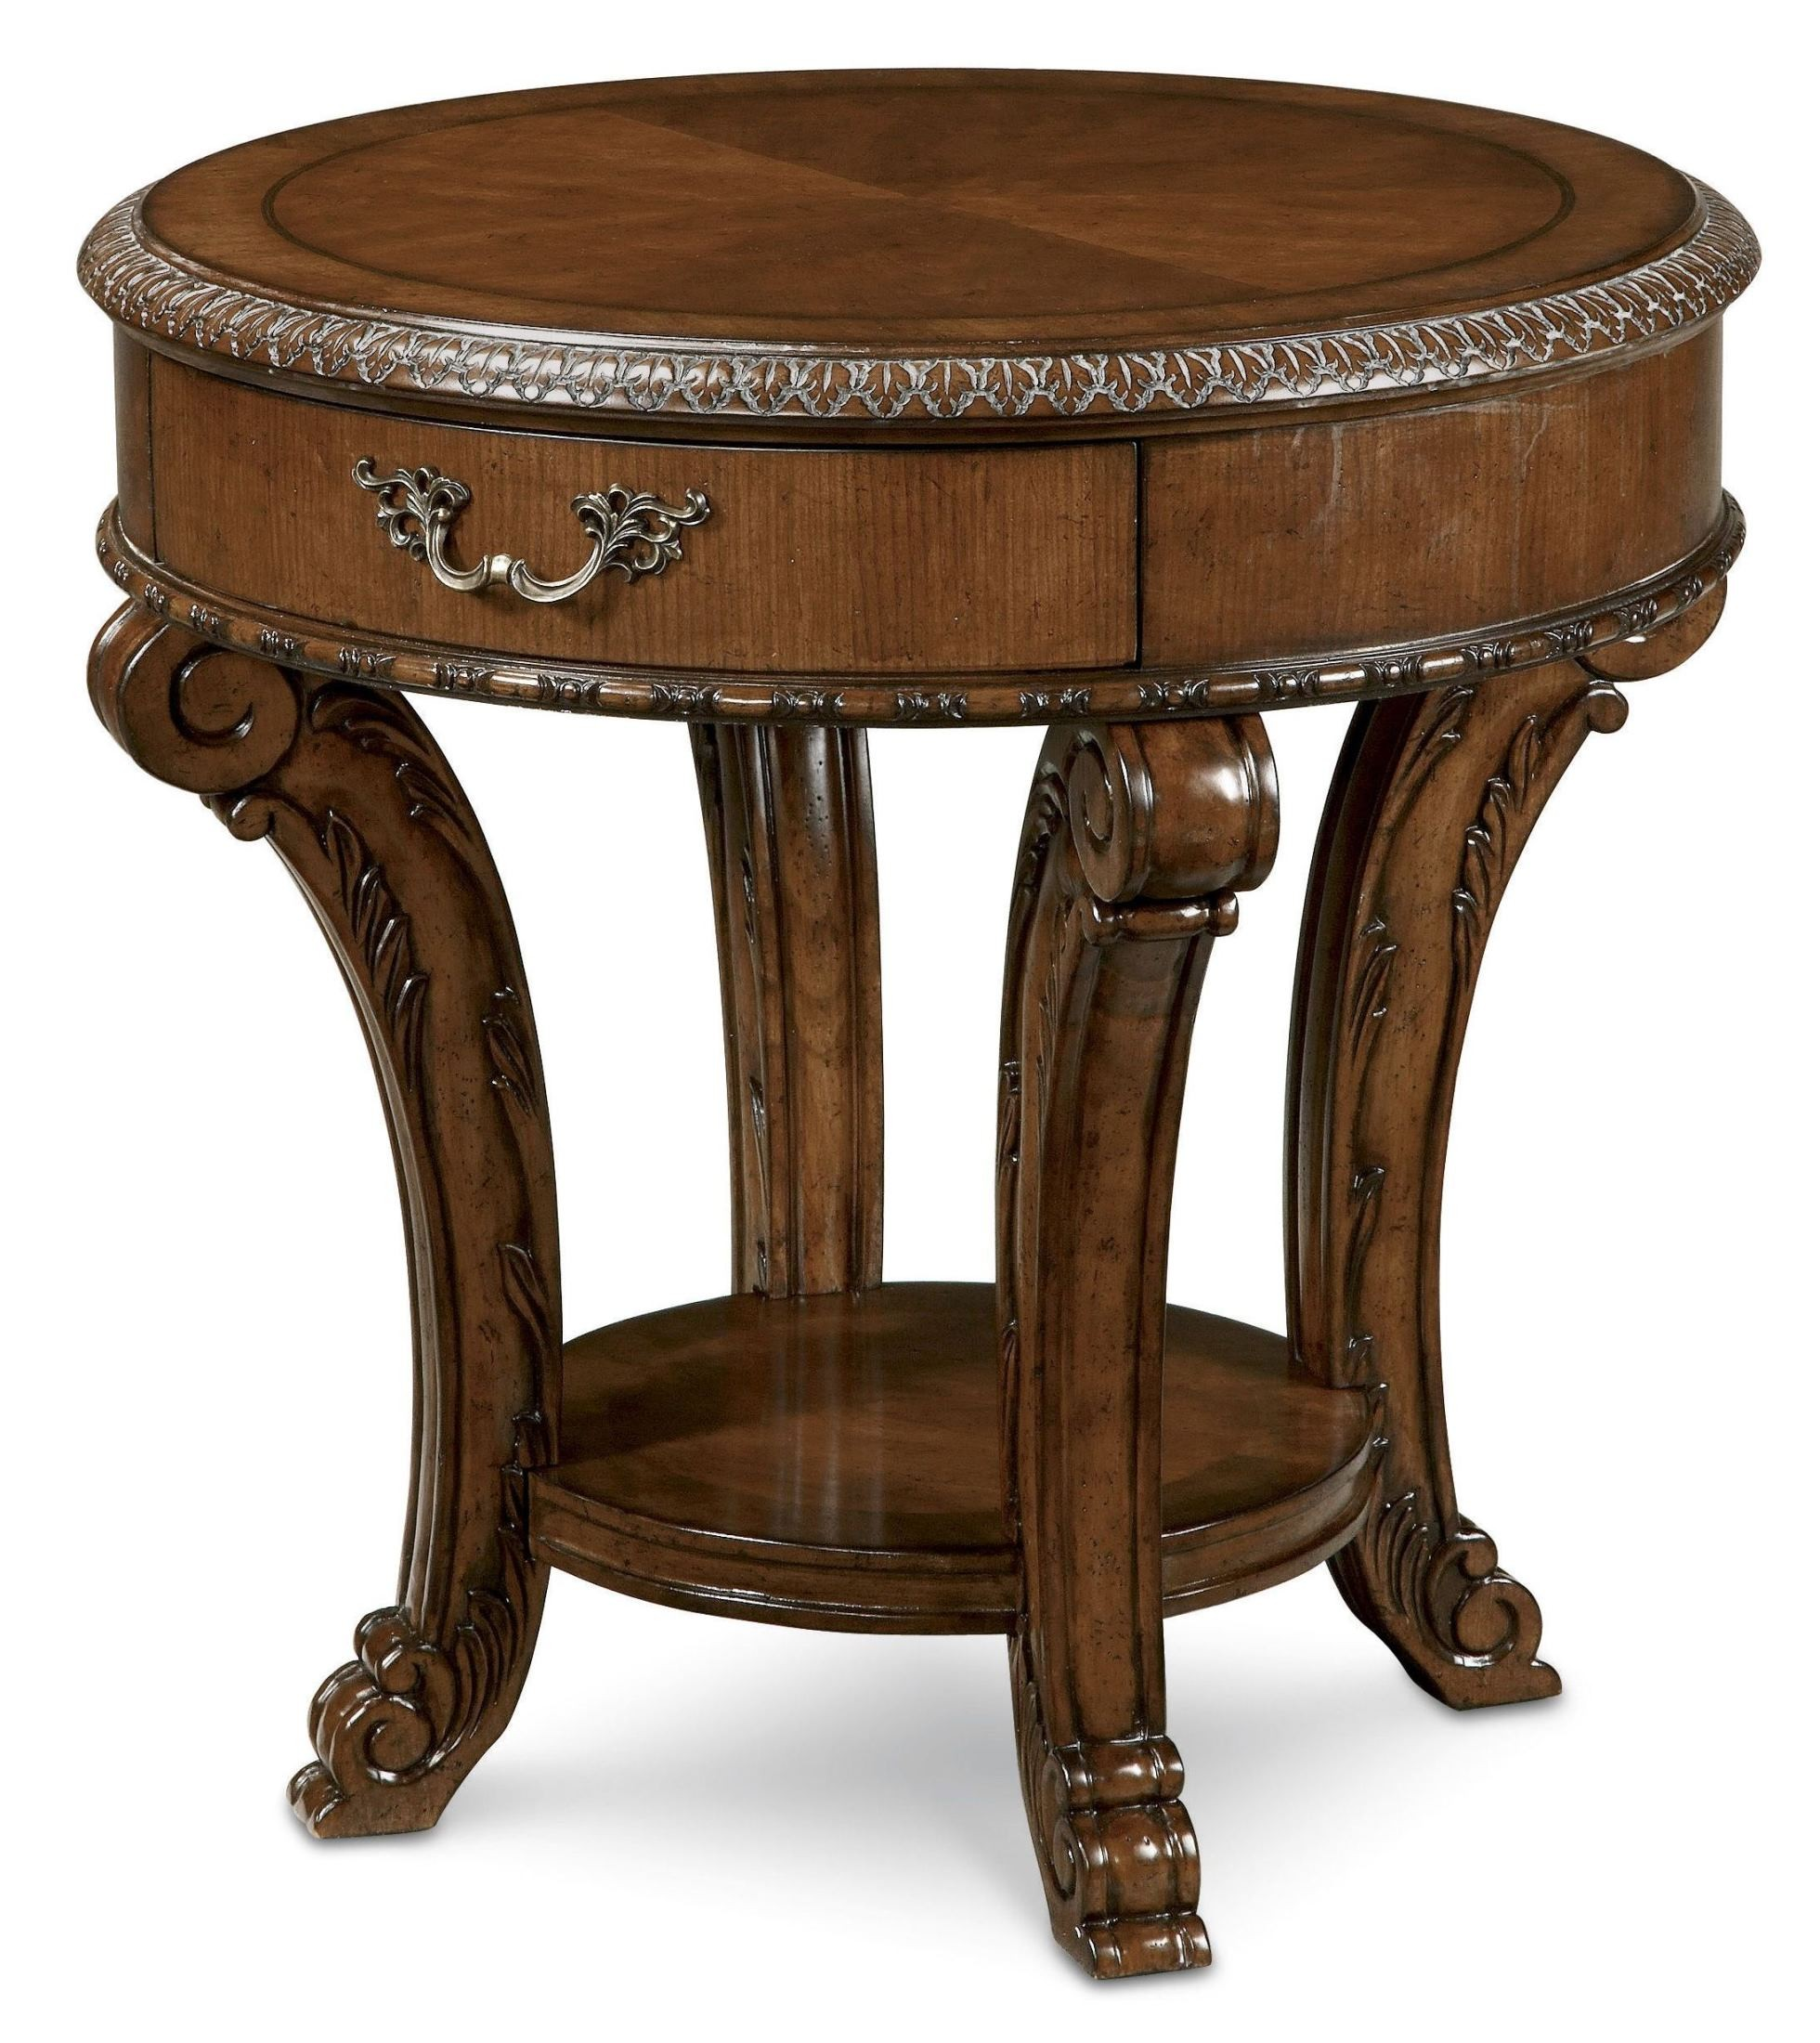 Old World Round End Table from ART 2606